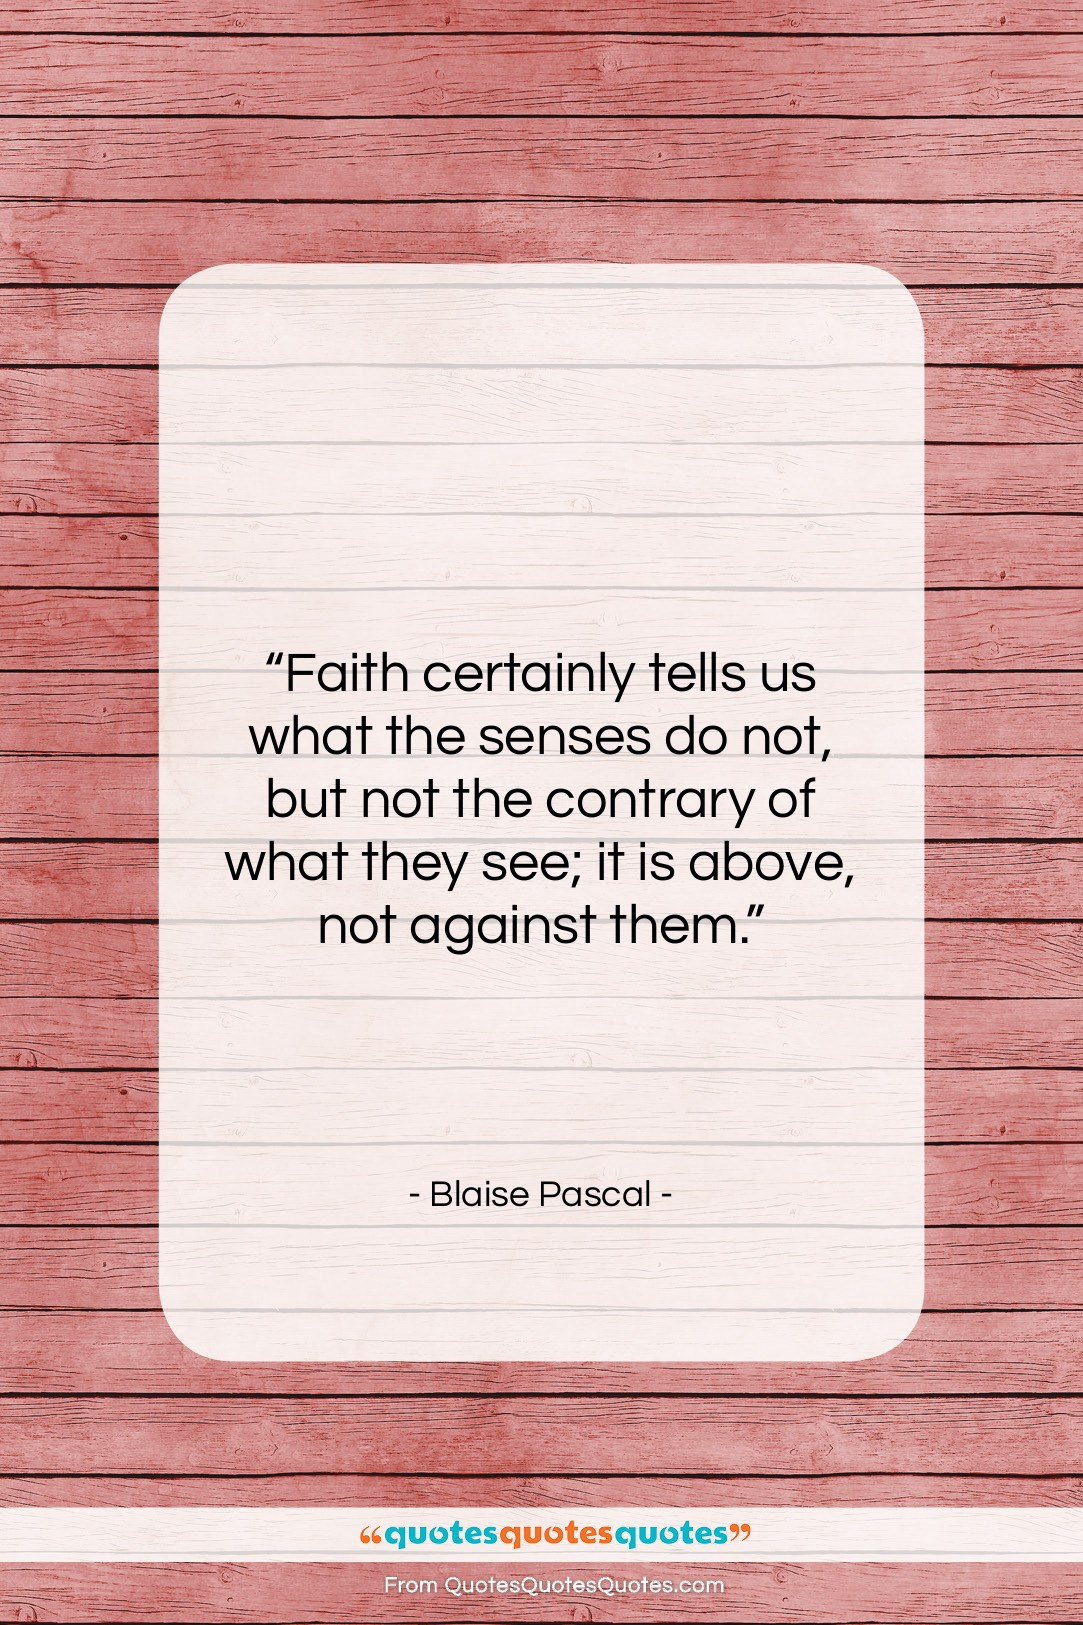 """Blaise Pascal quote: """"Faith certainly tells us what the senses…""""- at QuotesQuotesQuotes.com"""